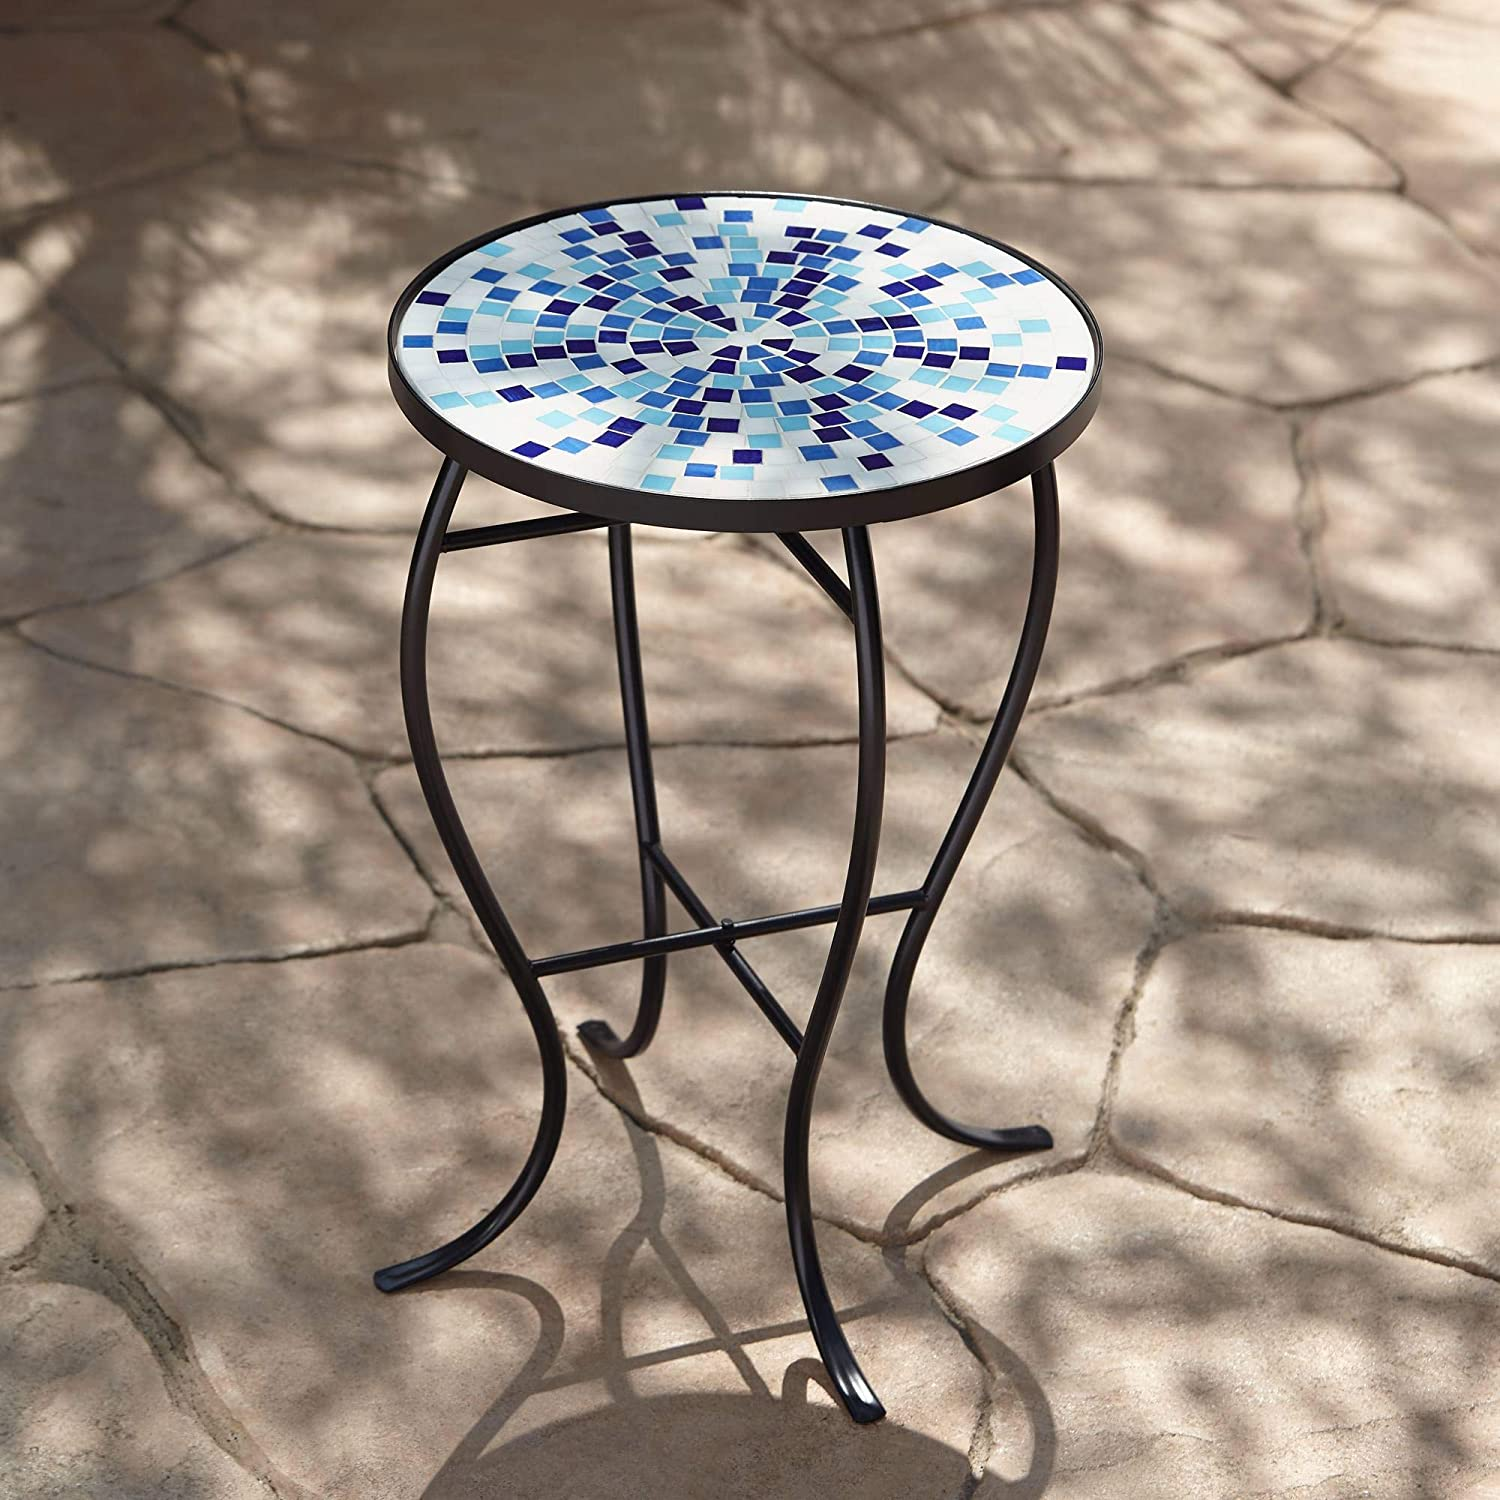 Teal Island Designs Multi Blue Mosaic Black Iron Outdoor Accent Table